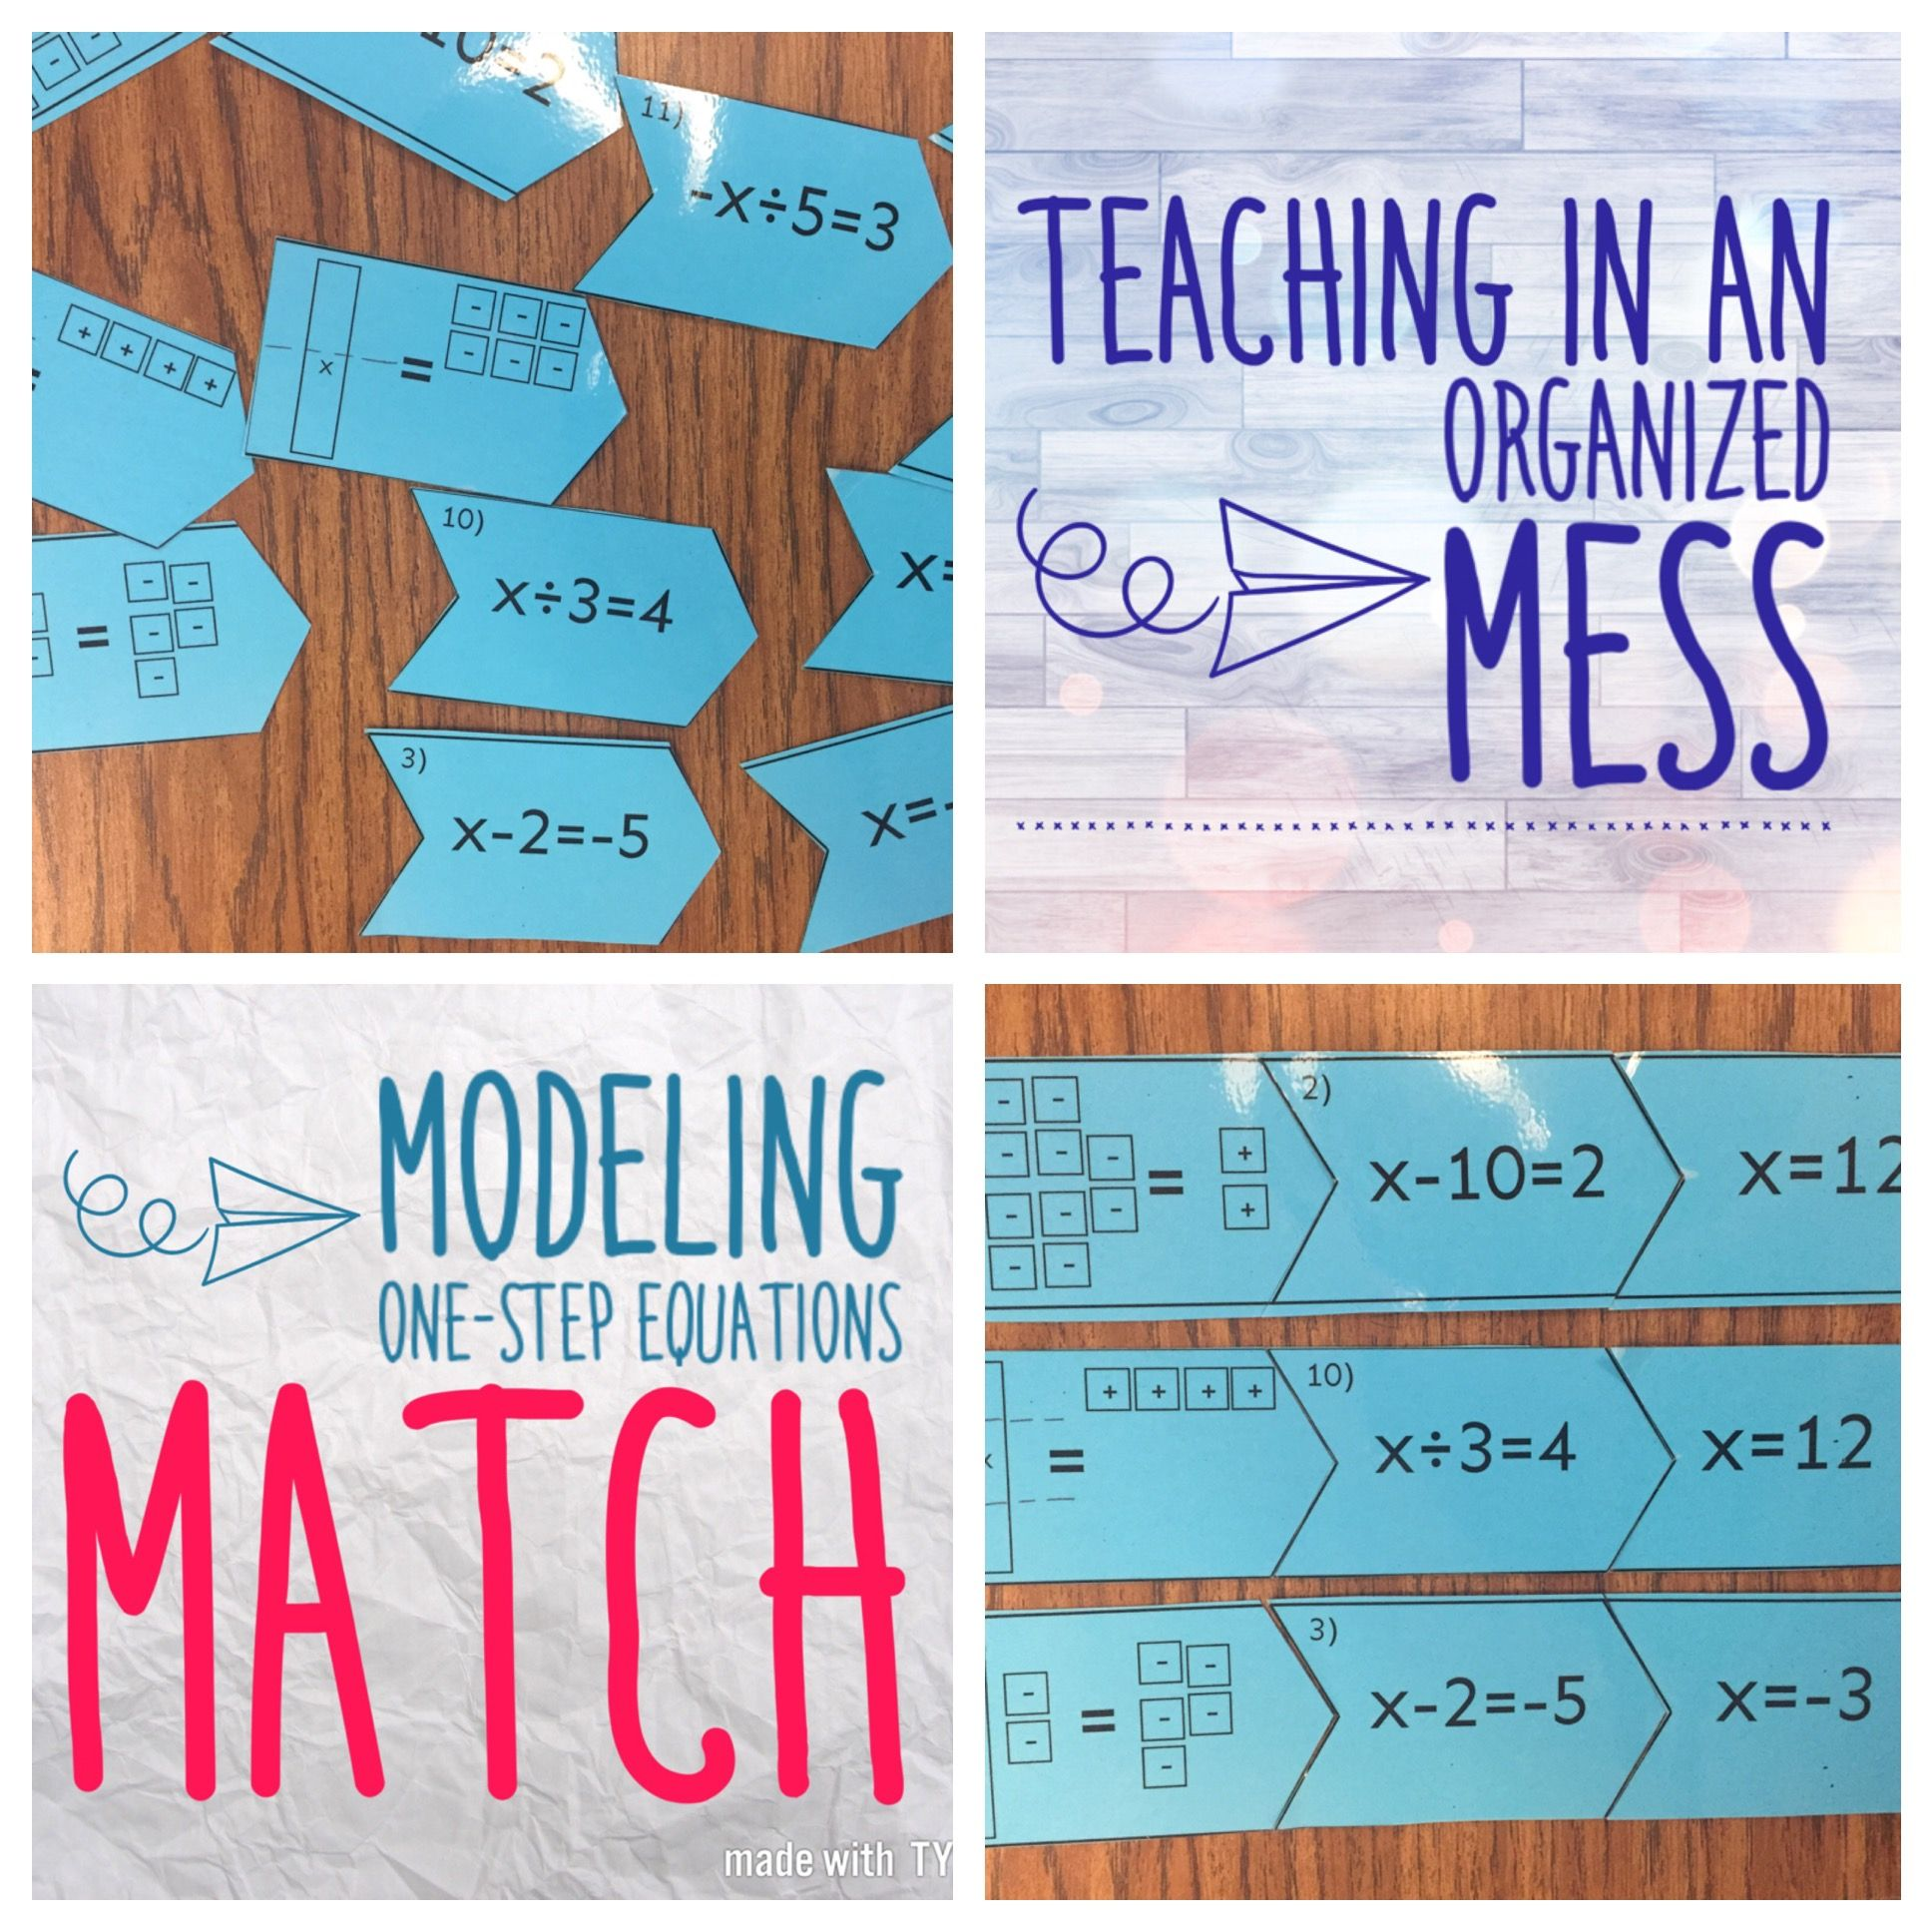 small resolution of Modeling One Step Equations Matching   One step equations